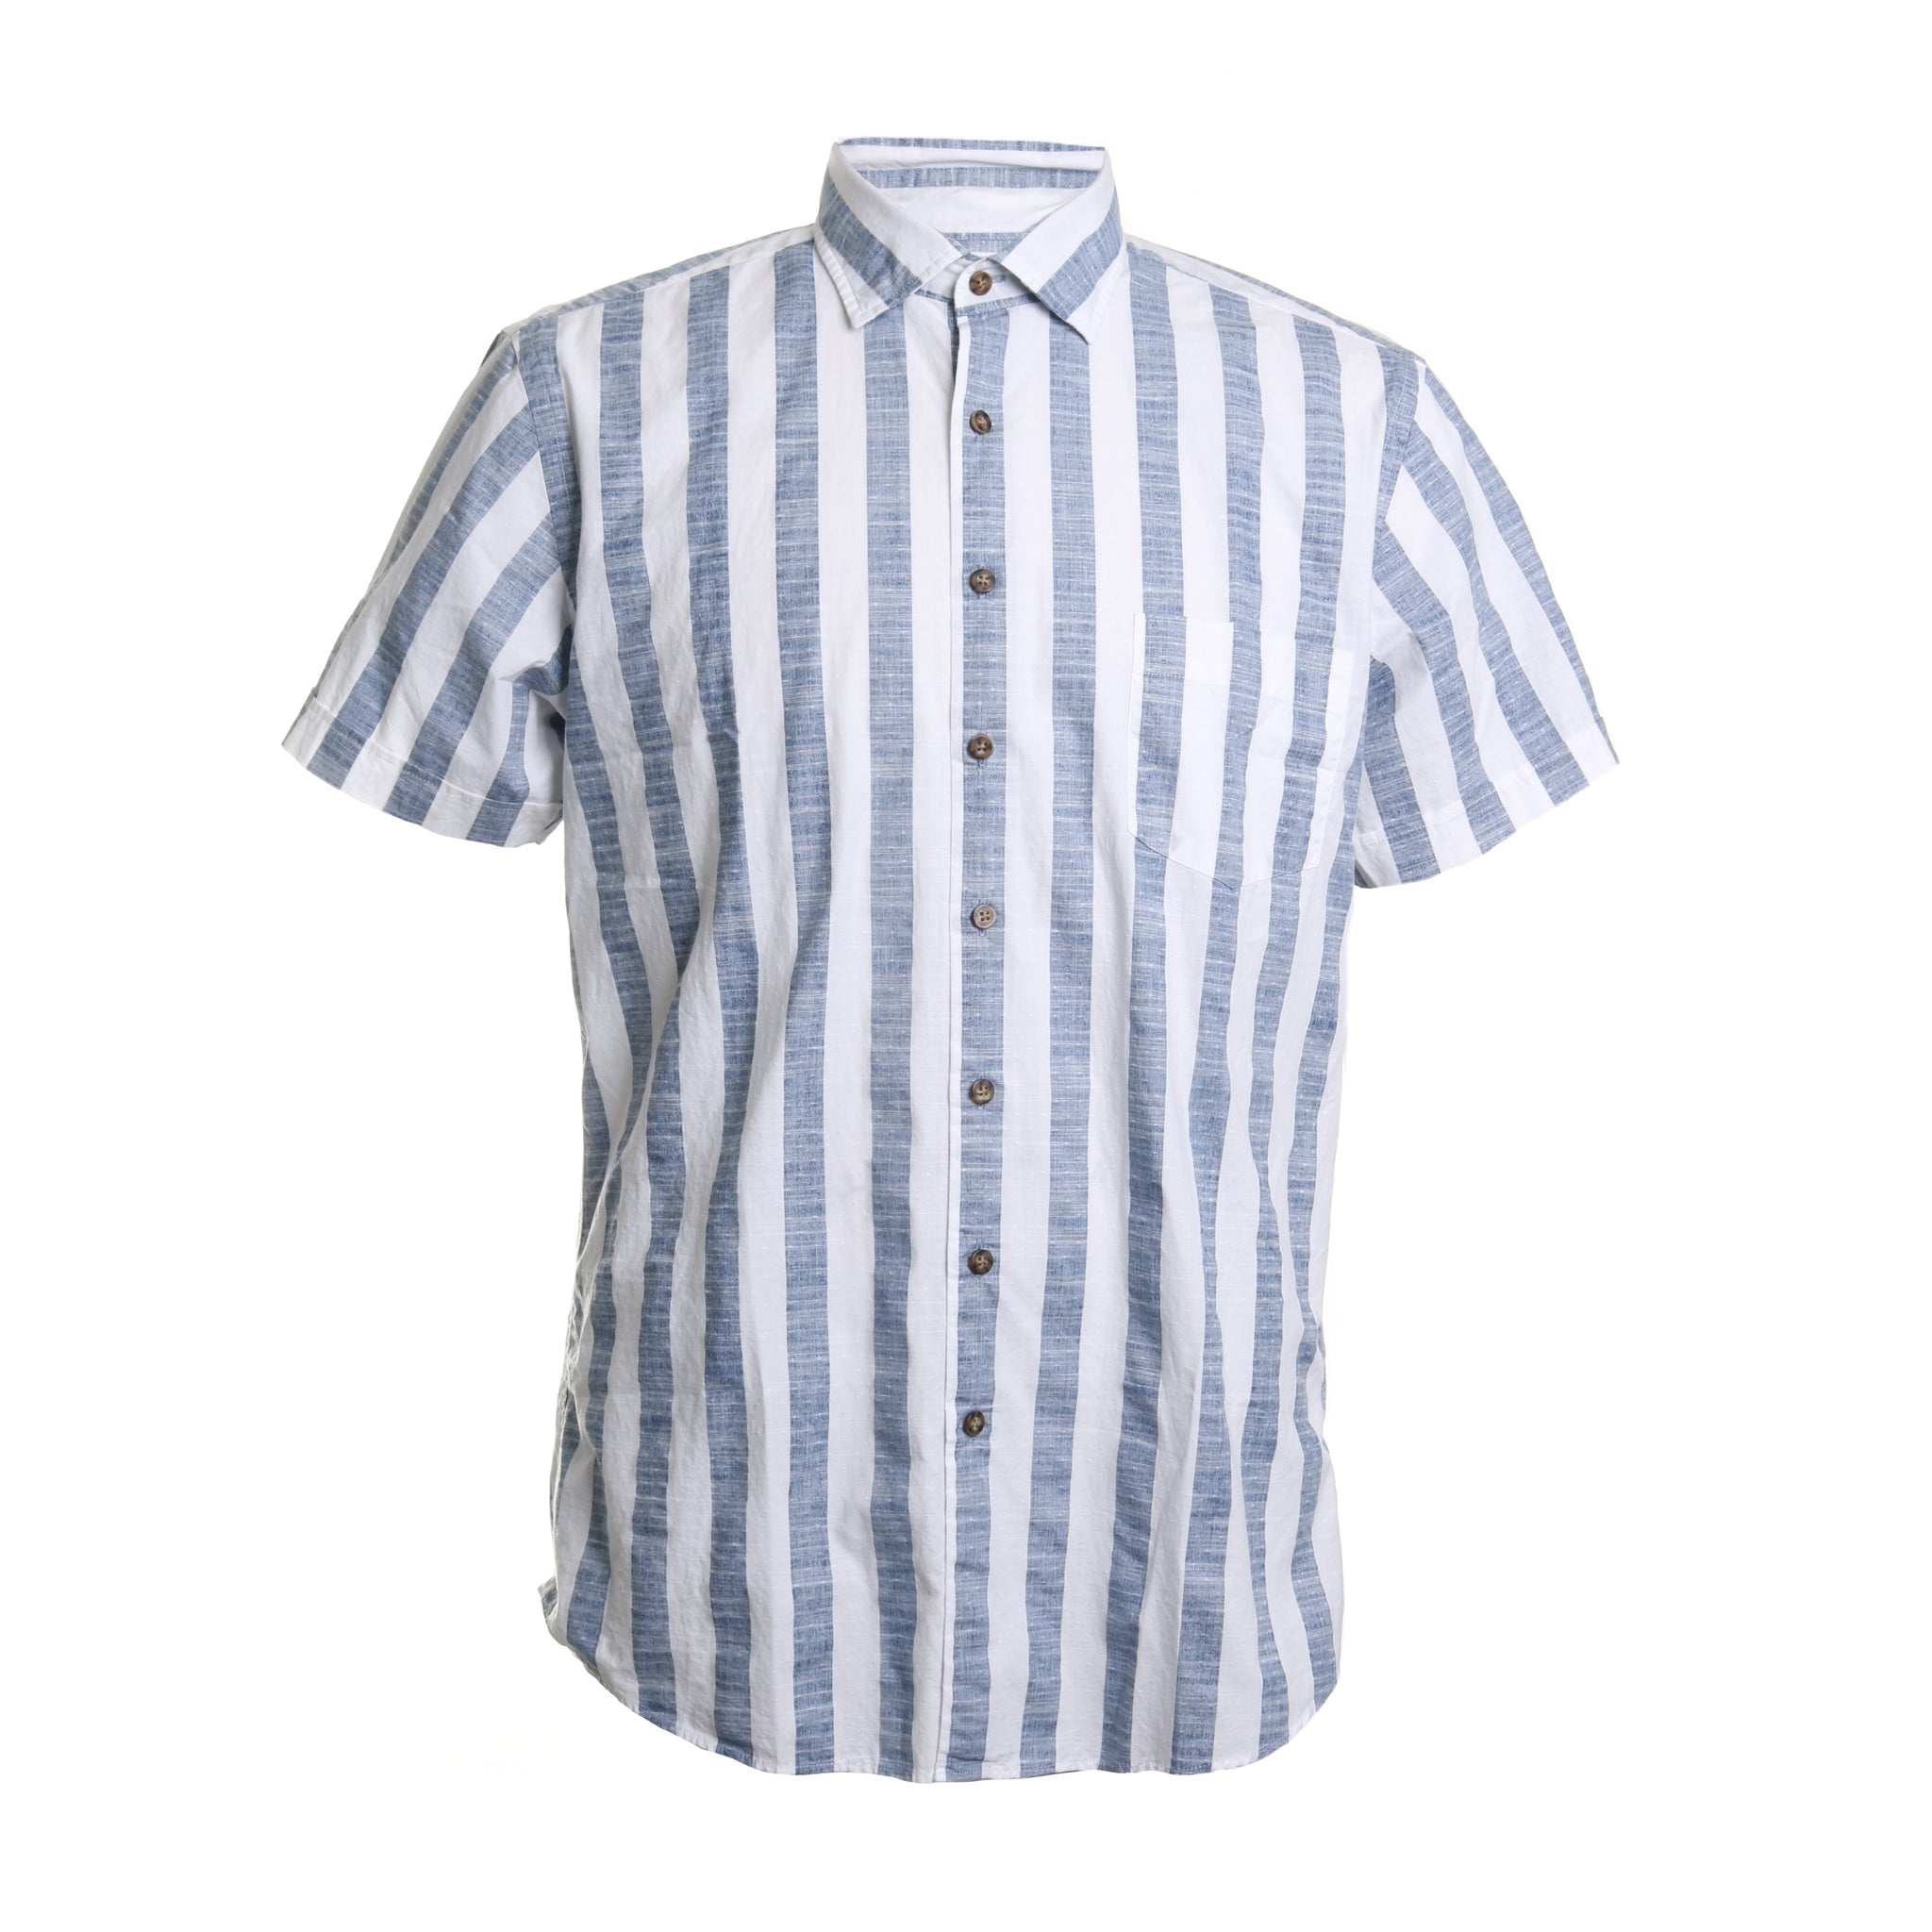 Fireshaw Cotton Striped Button Down